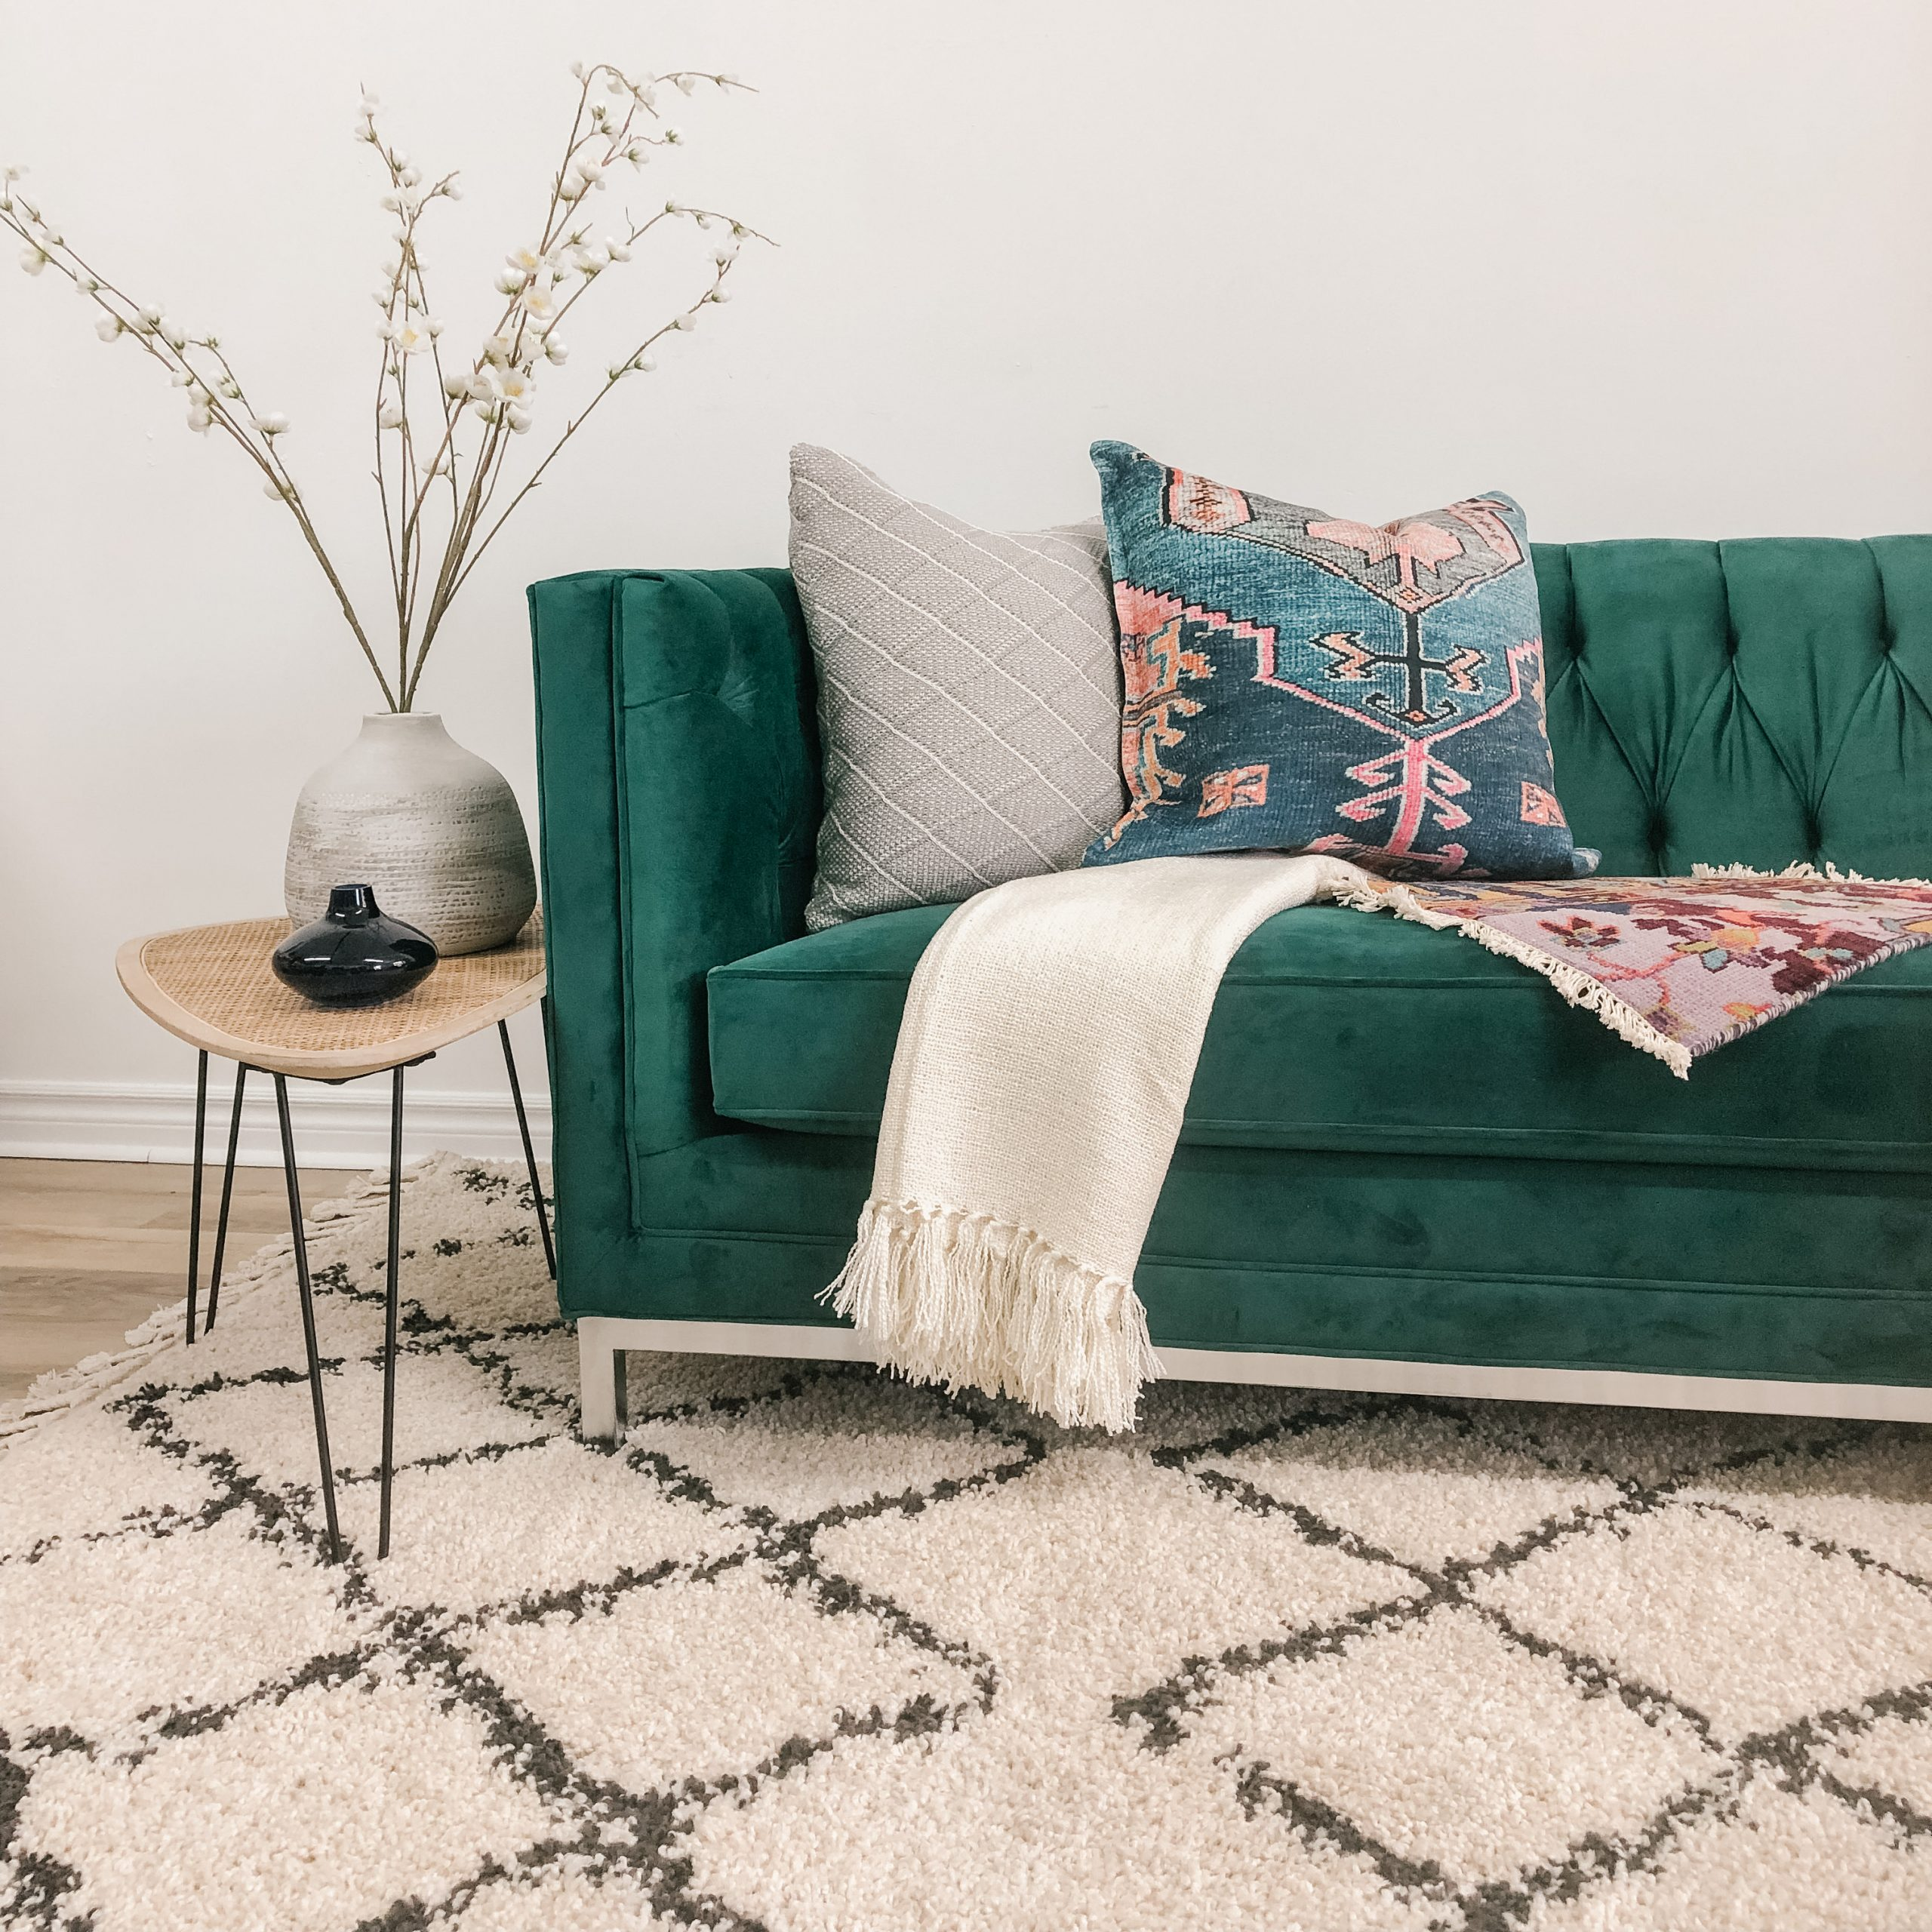 Get all the key furnishings for your room for one flat fee